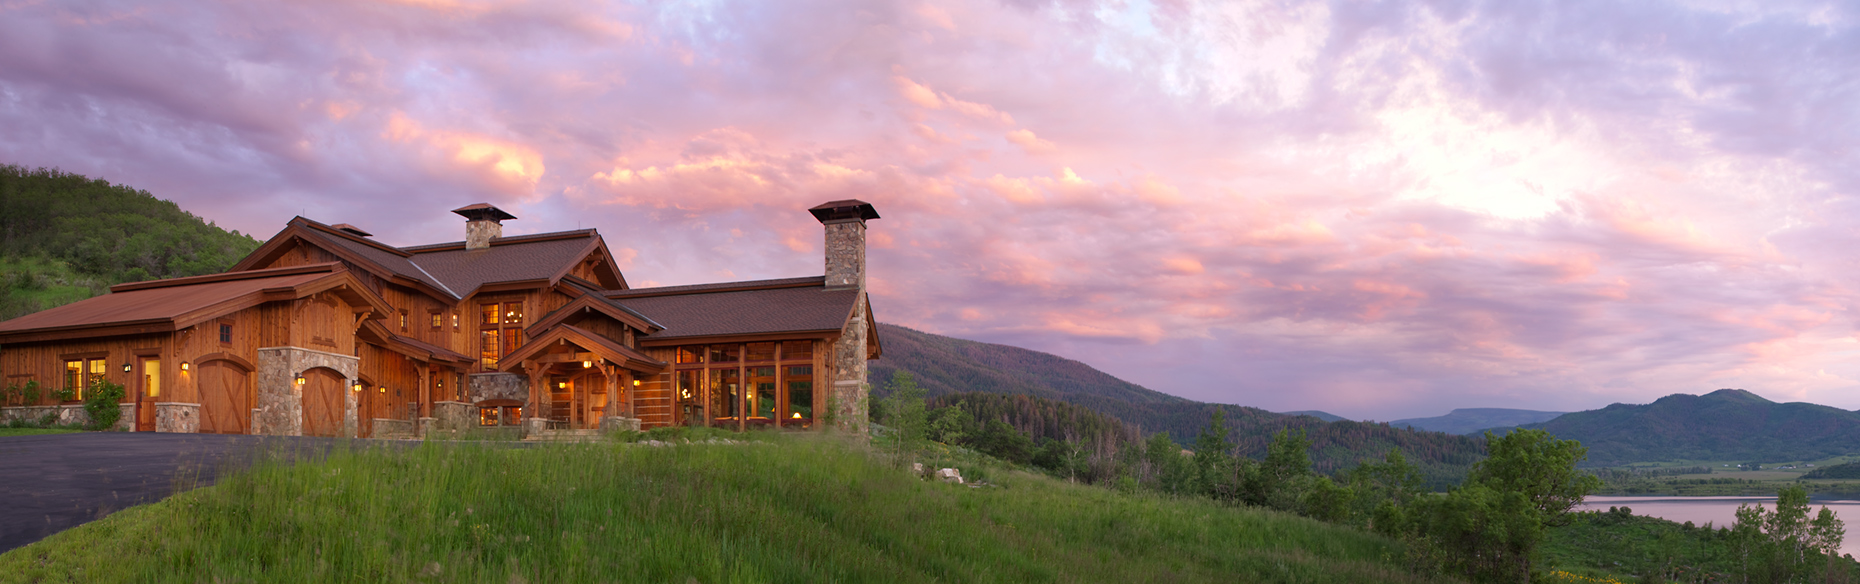 Lake Catamount Residence, Colorado/ David Patterson Photography/Photography of Architecture+Interiors, Colorado